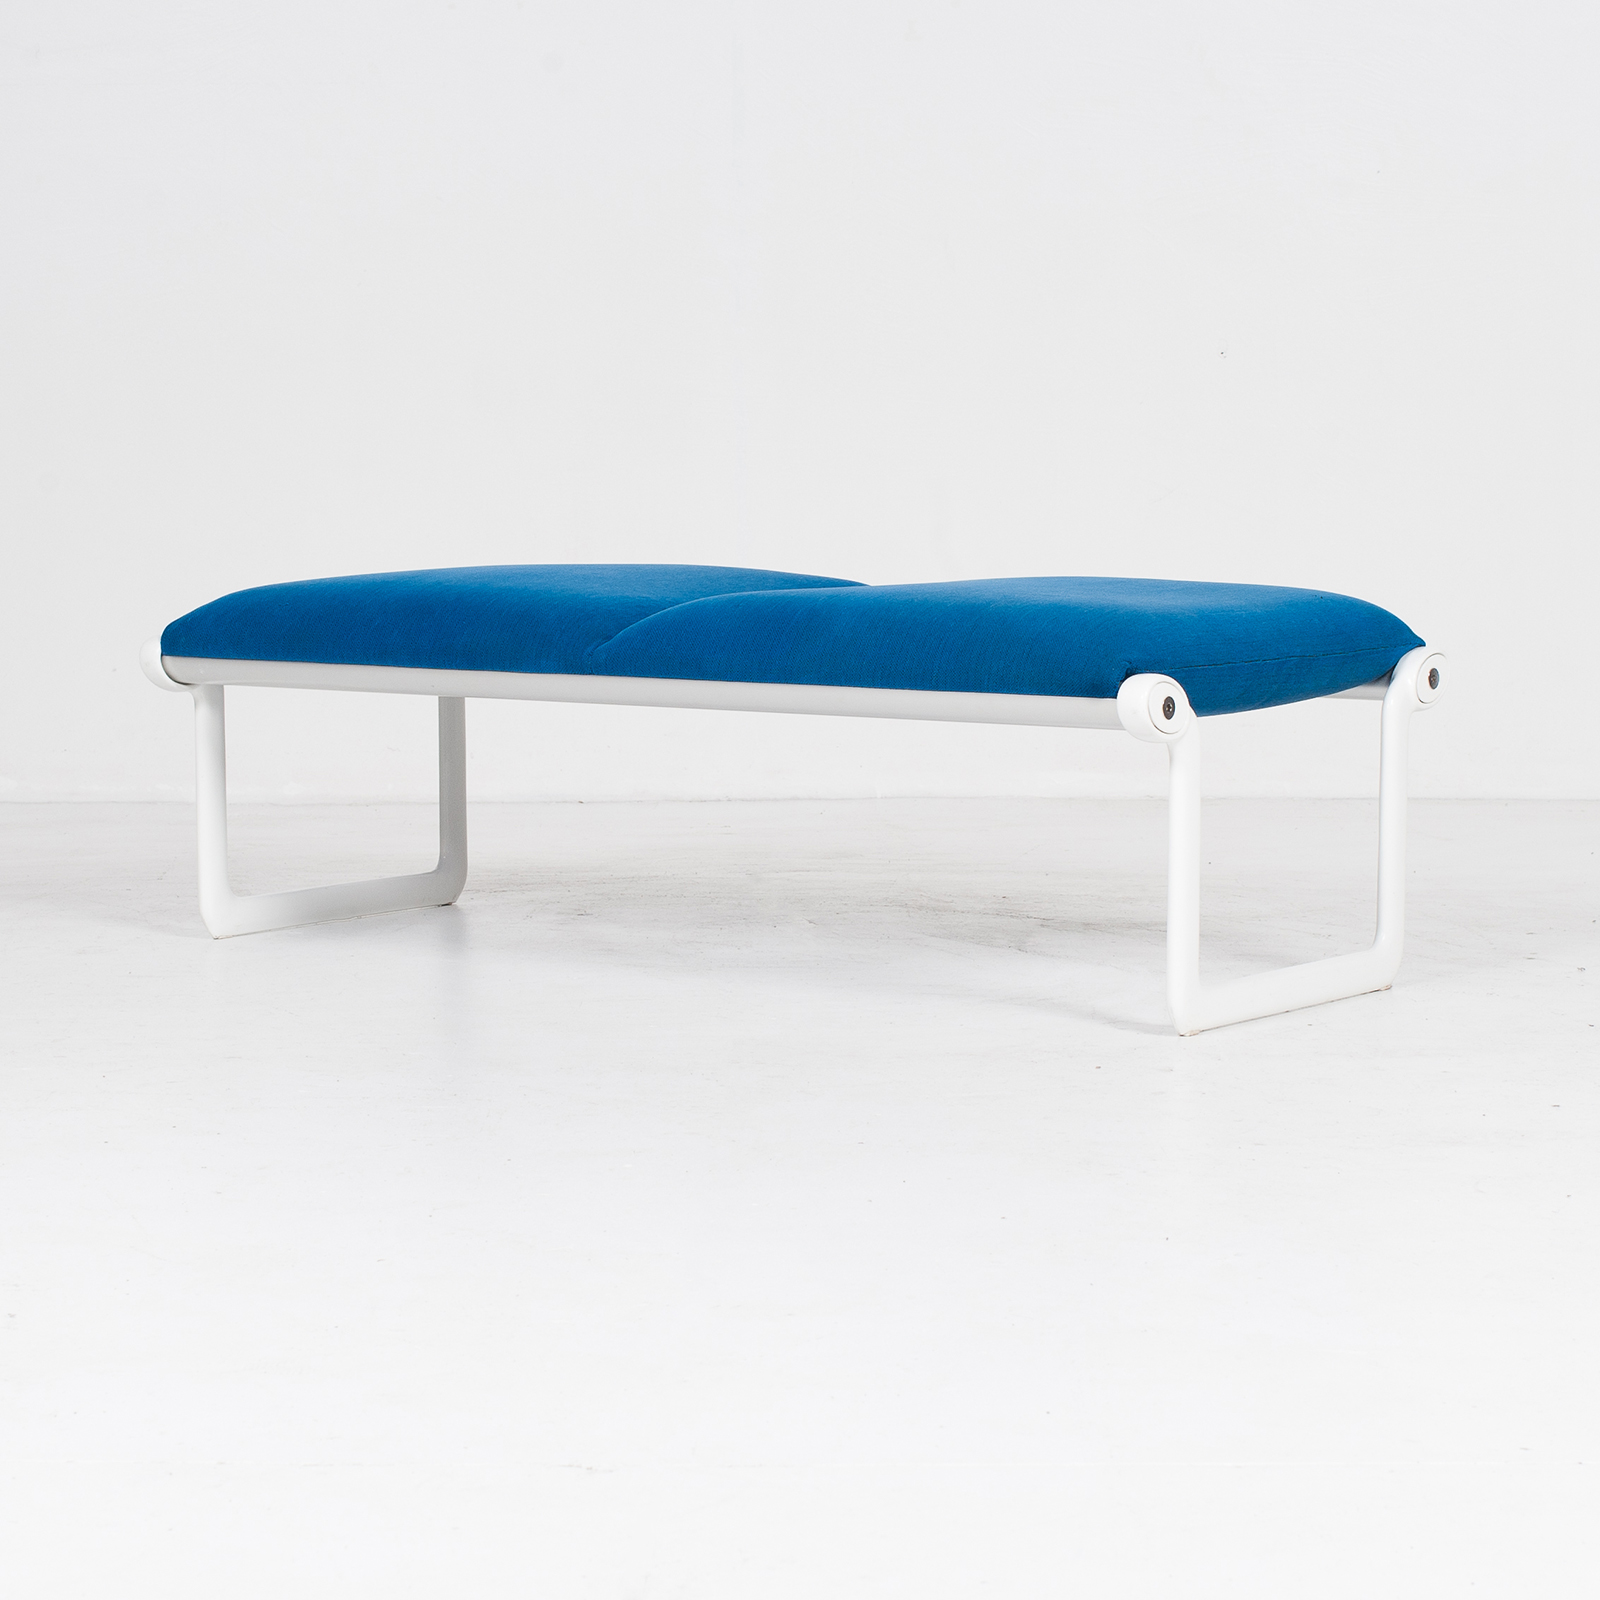 Bench By Bruce Hannah And Andrew Morrison For Knoll With Blue Upholstery, 1960s, United States 2